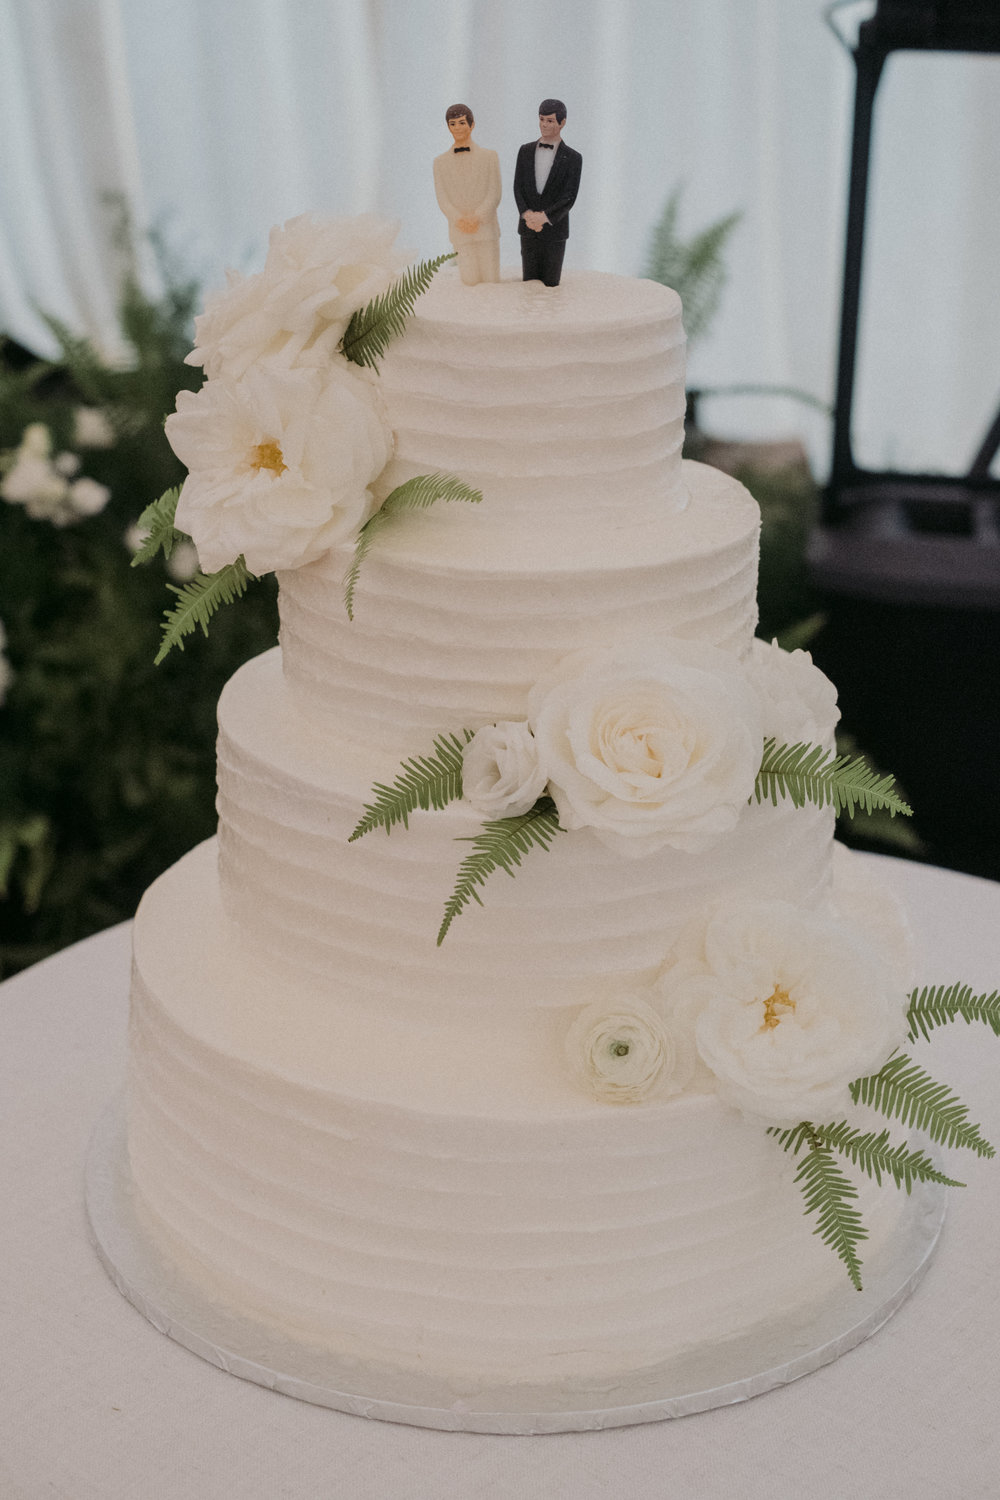 Same Sex Wedding in Provincetown, MA. Destination wedding planned by Nicole Simeral. Coastal Chic Wedding, Travel Wedding, Sperry Sailcloth Tent Wedding, bamboo folding chairs, Belfast linen, whites and greens , wedding cake, cake flowers, cake topper